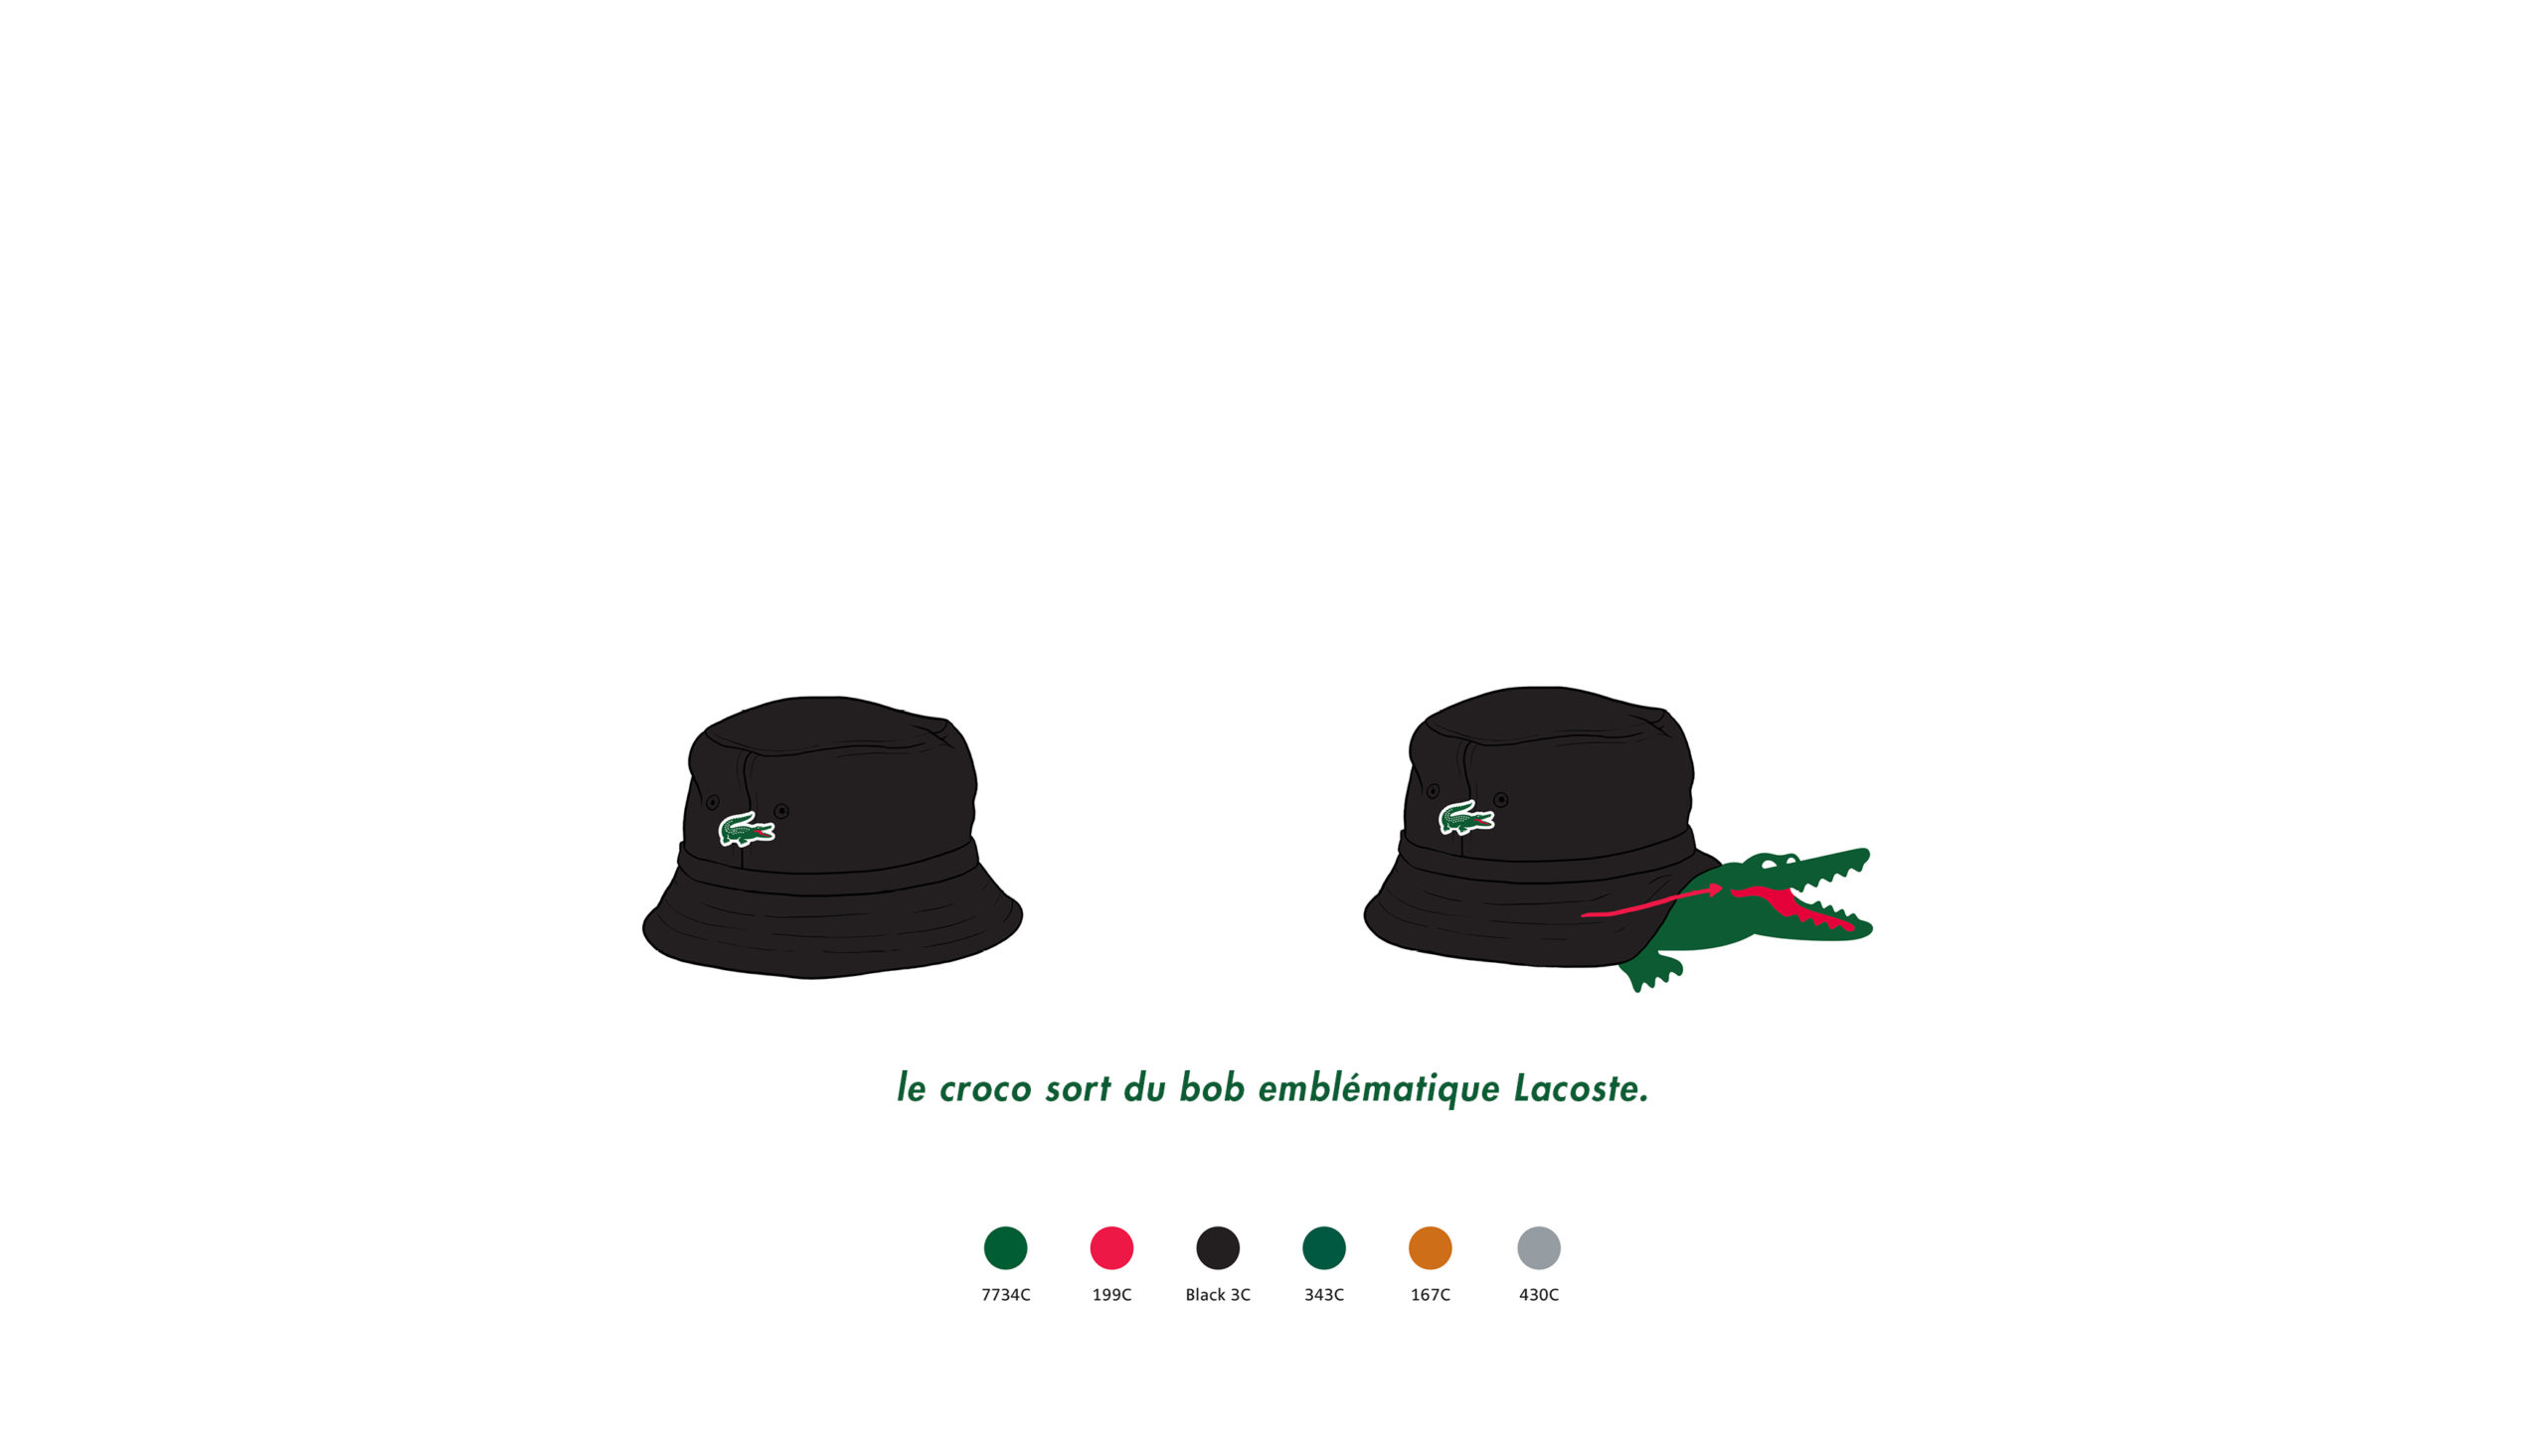 LACOSTE_STICKERS_HOBBYNOTE_R_0837